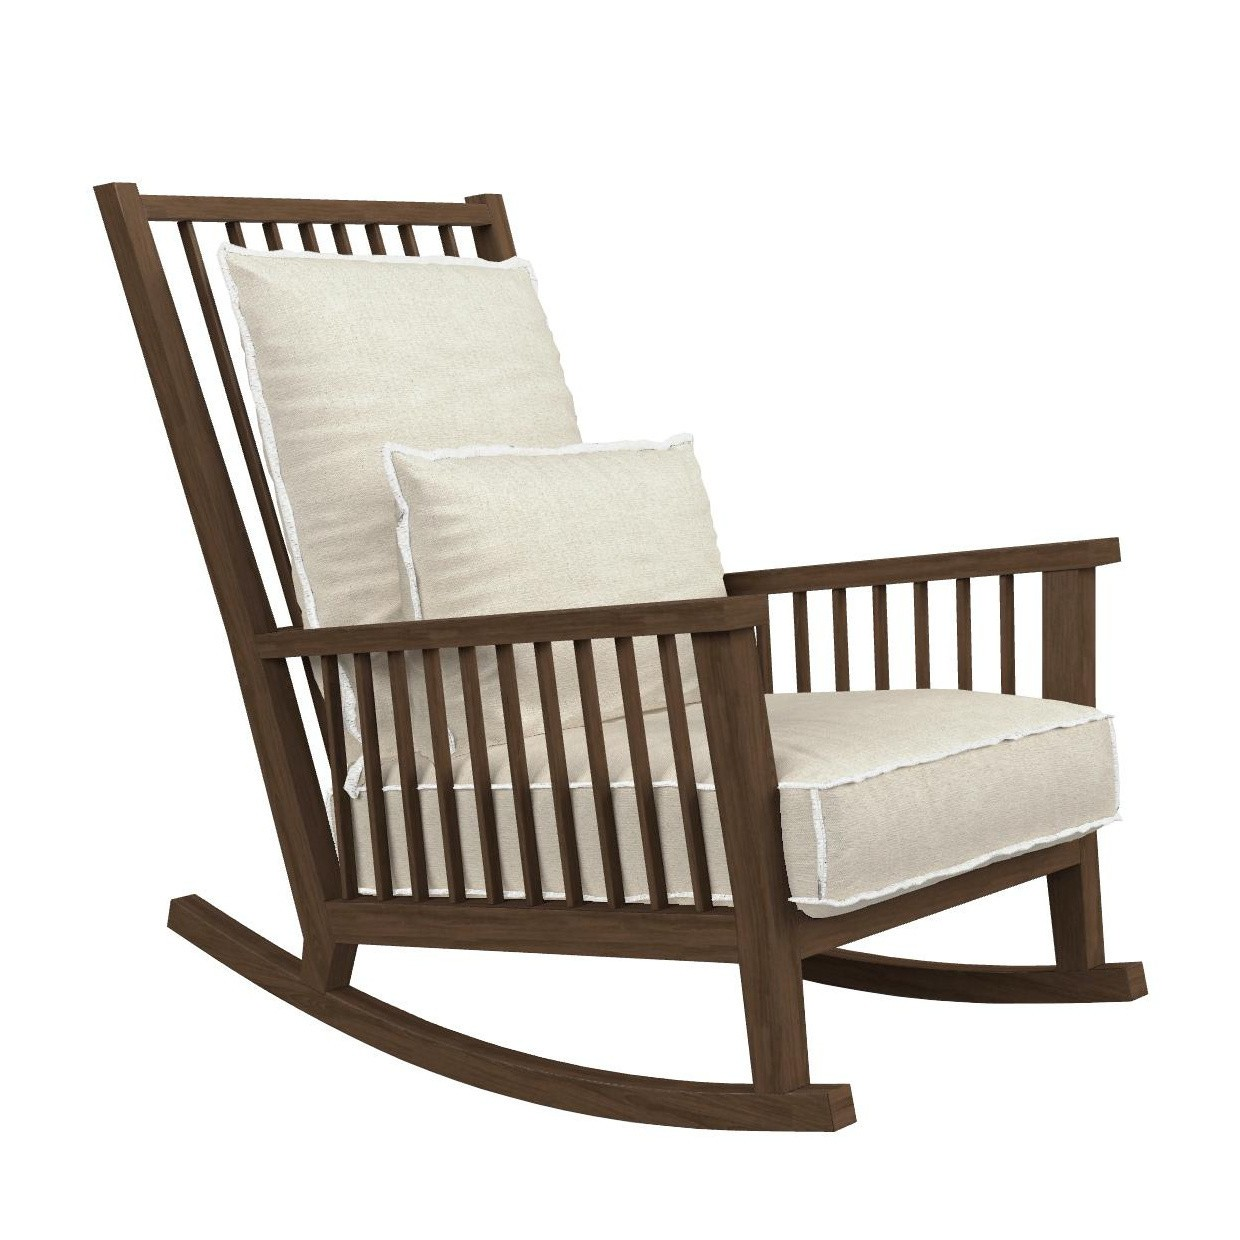 Astonishing Gray 09 Rocking Chair Lamtechconsult Wood Chair Design Ideas Lamtechconsultcom